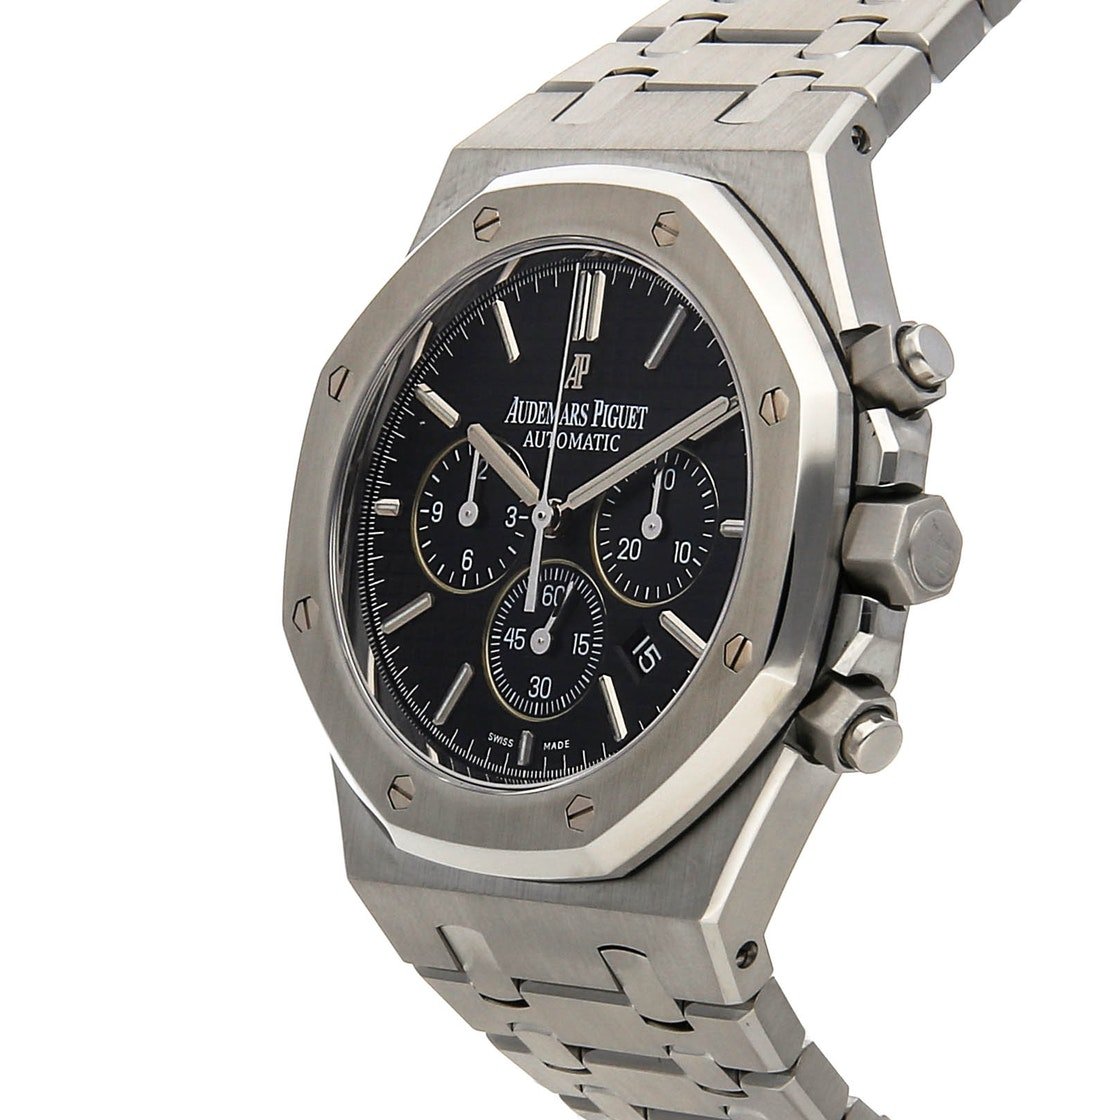 Audemars Piguet Royal Oak Chronograph 26320ST.00.1220S